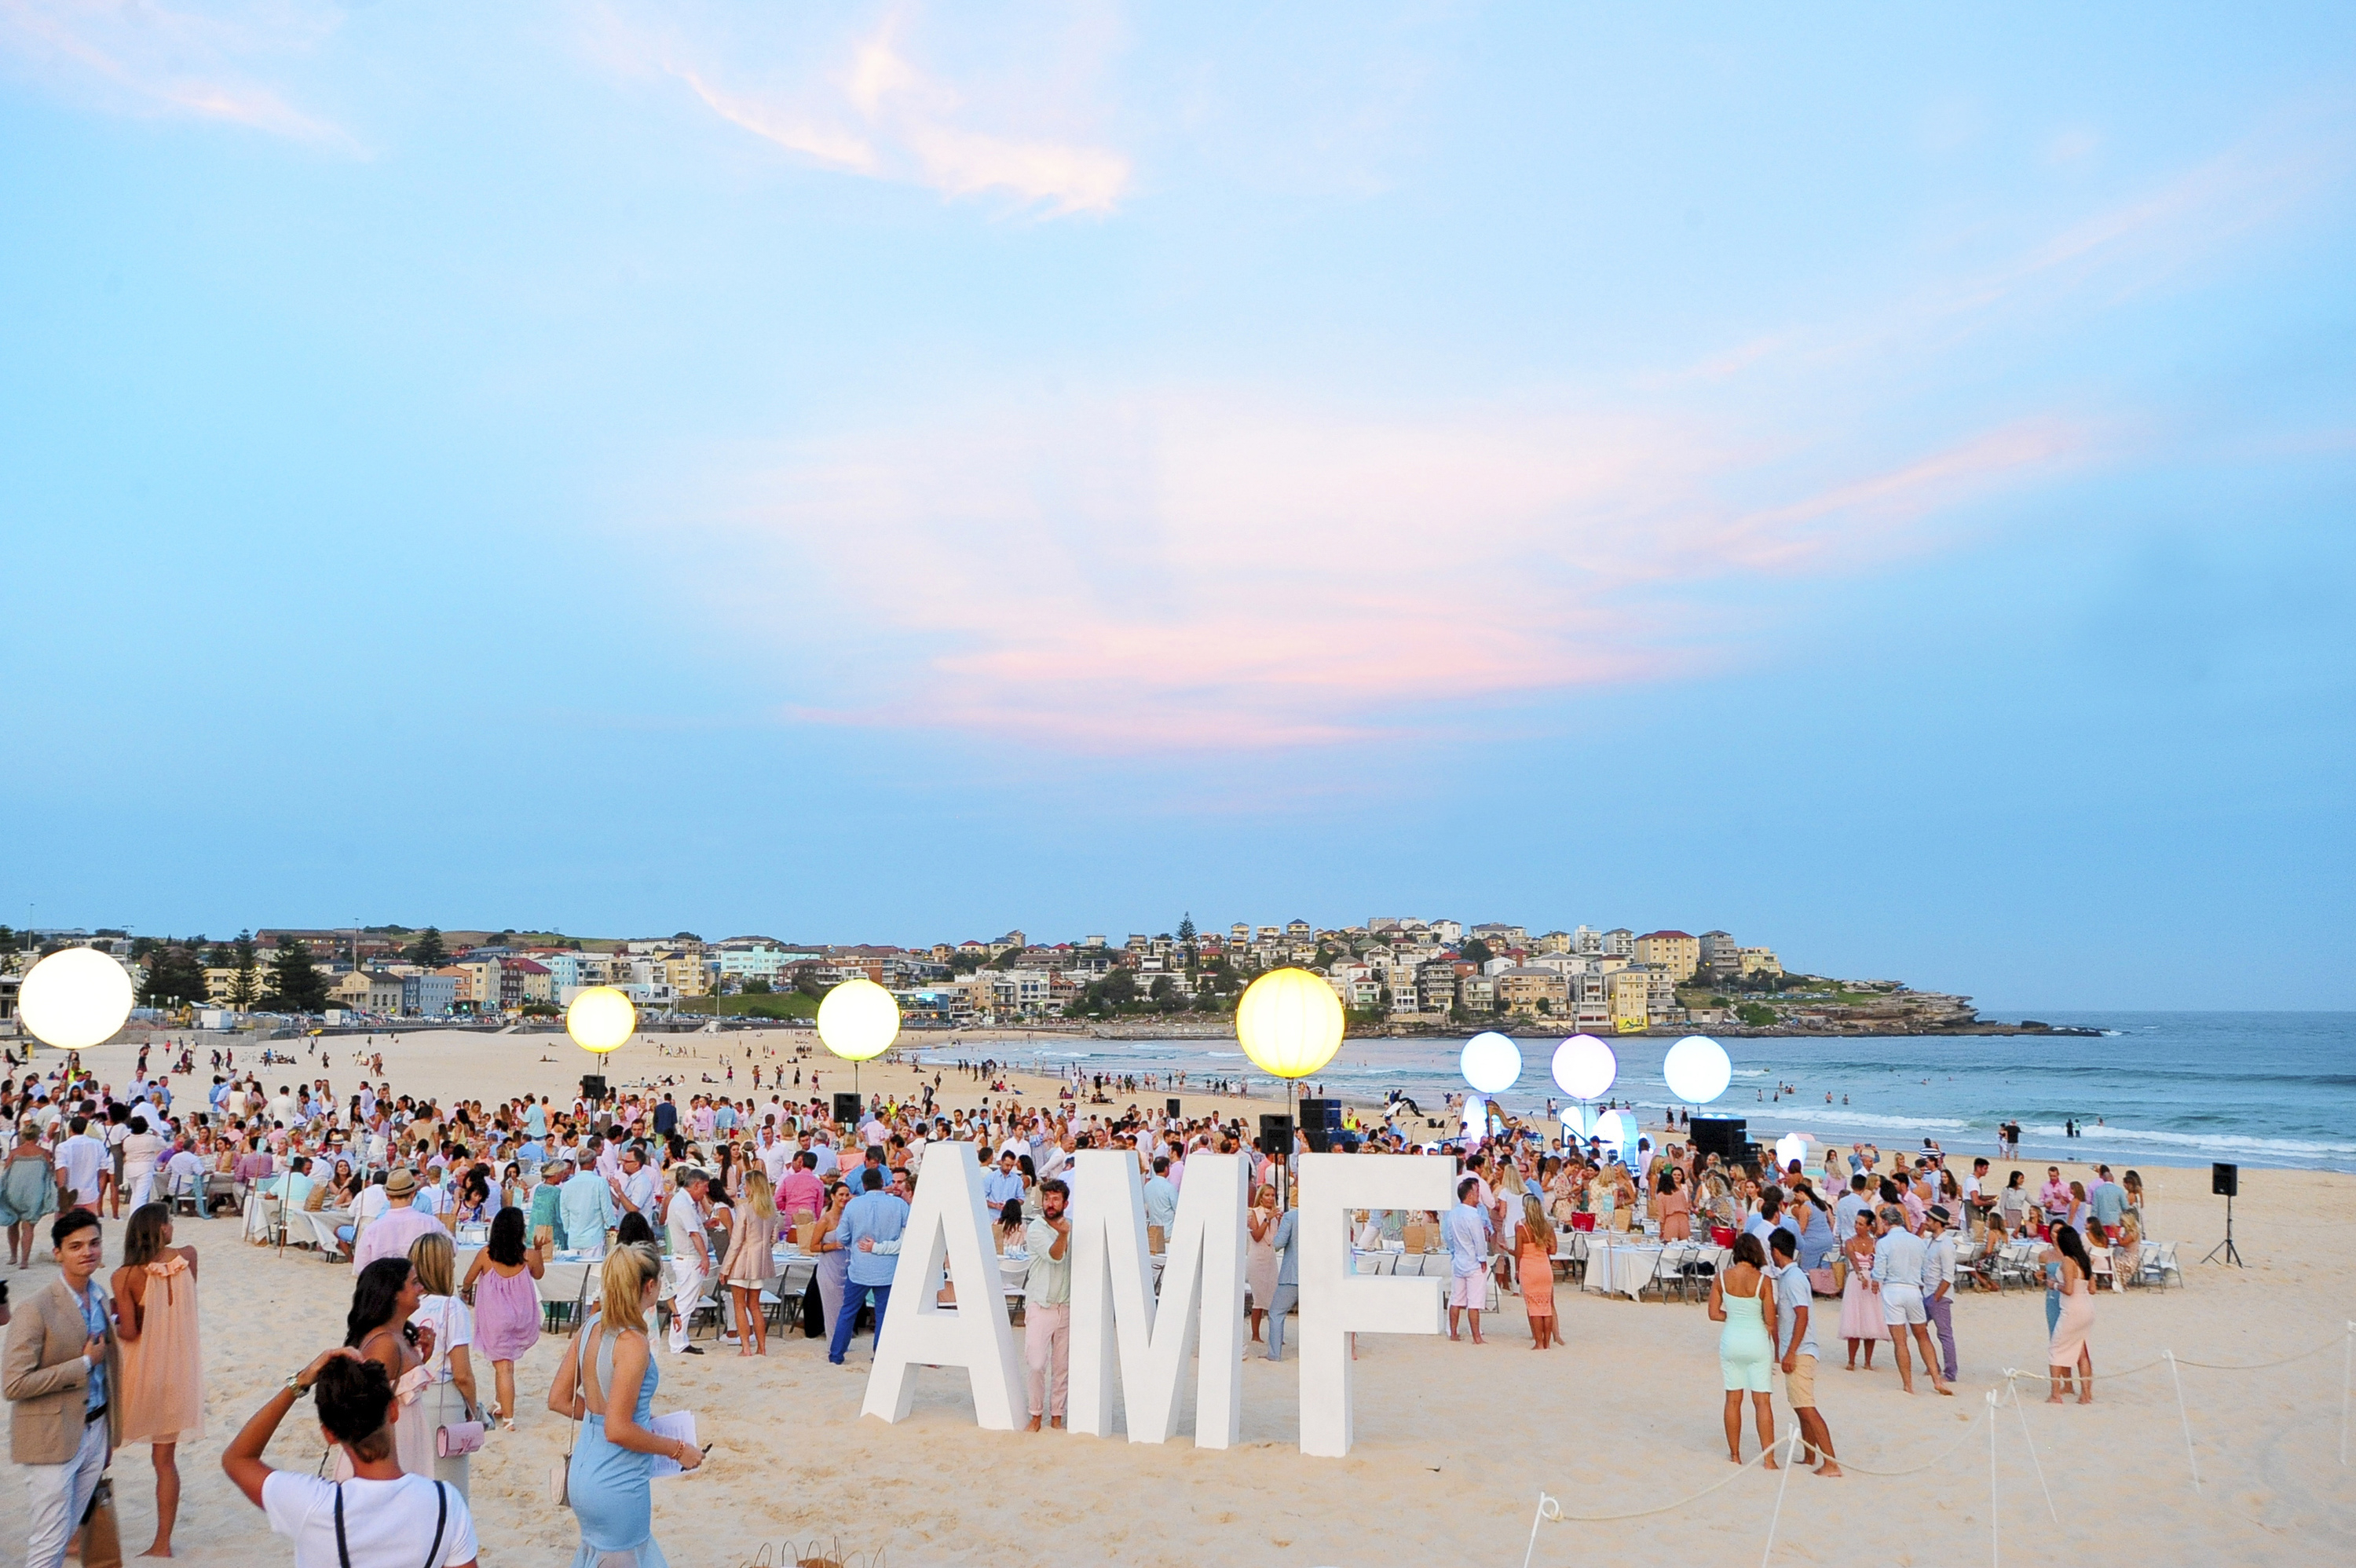 What's On Sydney | Events Calendar For Sydney Festivals, Holidays with regard to Community Calender Sydney October 2019